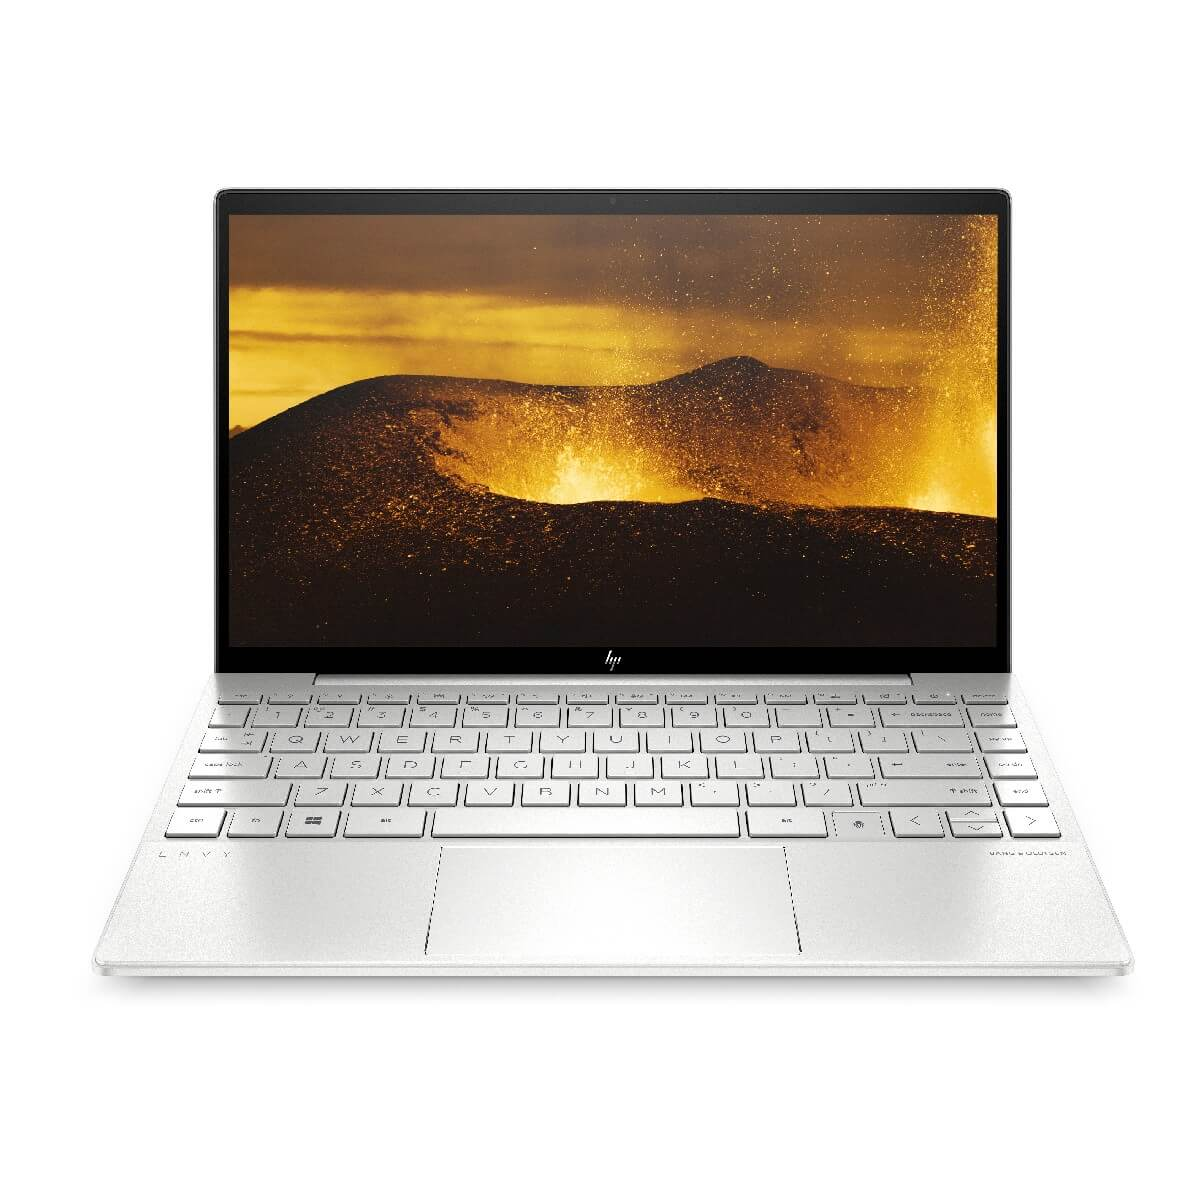 מחשב נייד HP ENVY 13-ba1010nj